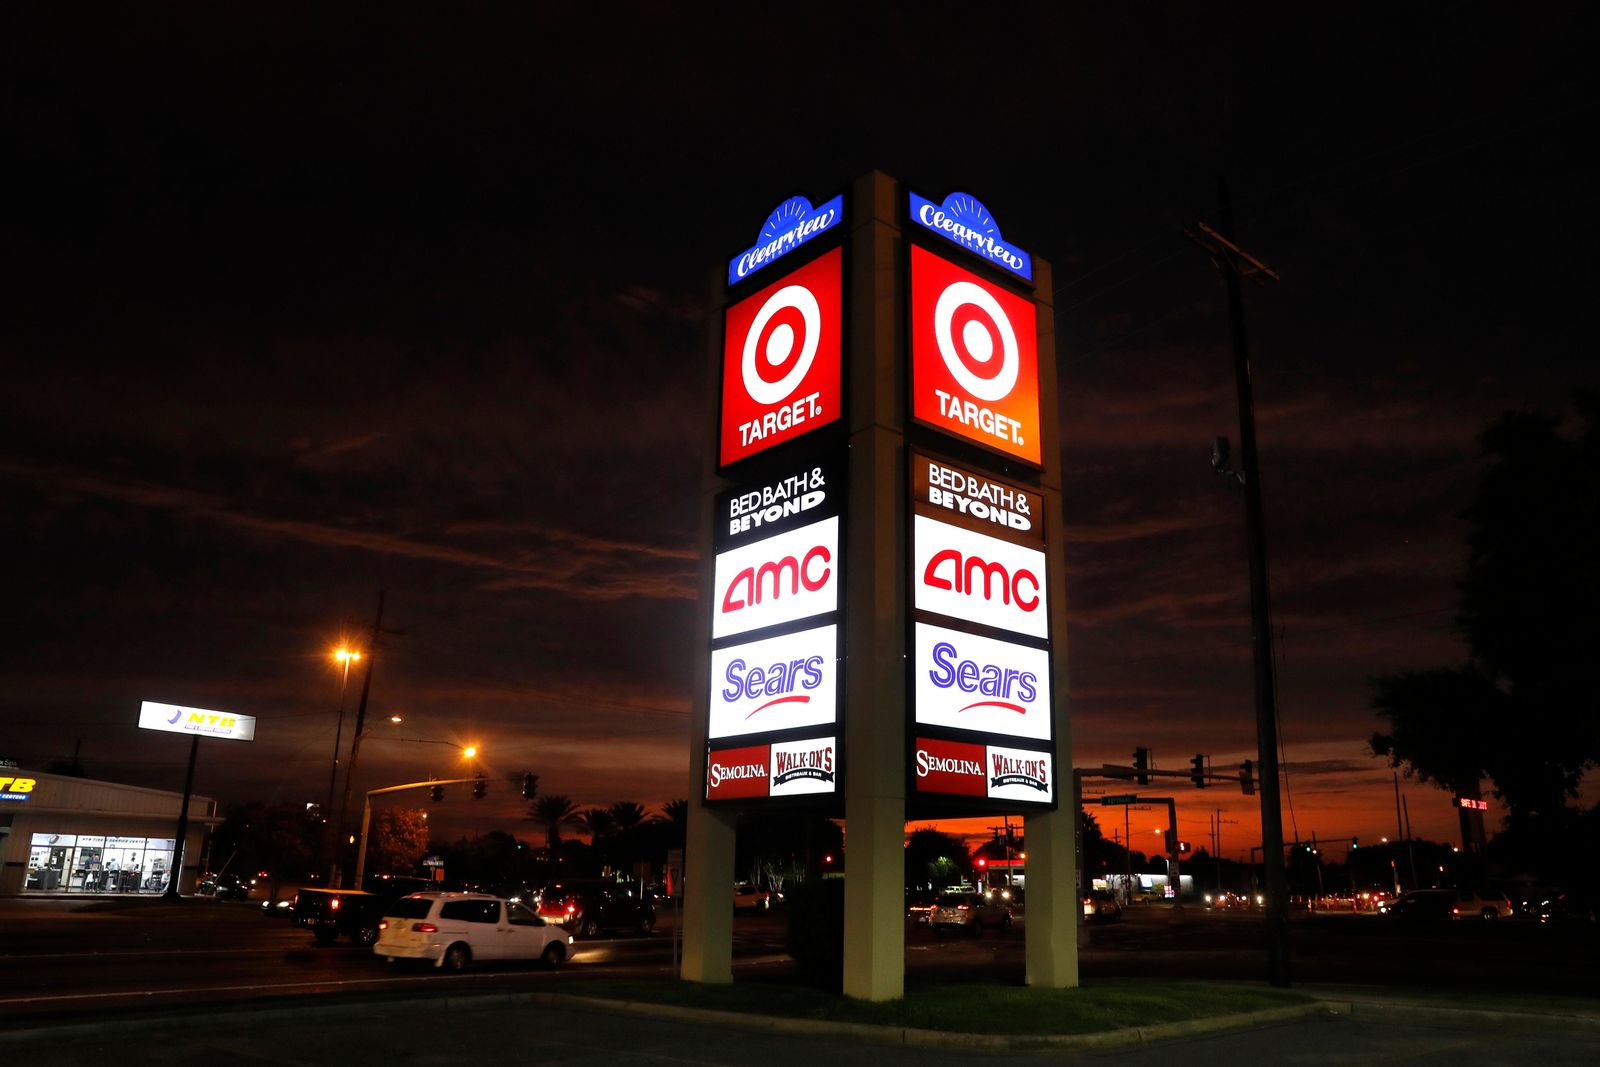 FILE - This Aug. 15, 2019, file photo shows signage for Target, Bed Bath & Beyond, AMC Theaters, and Sears in Metairie, La. Nine months out of bankruptcy, Sears is limping into the holiday shopping season. (AP Photo/Gerald Herbert)